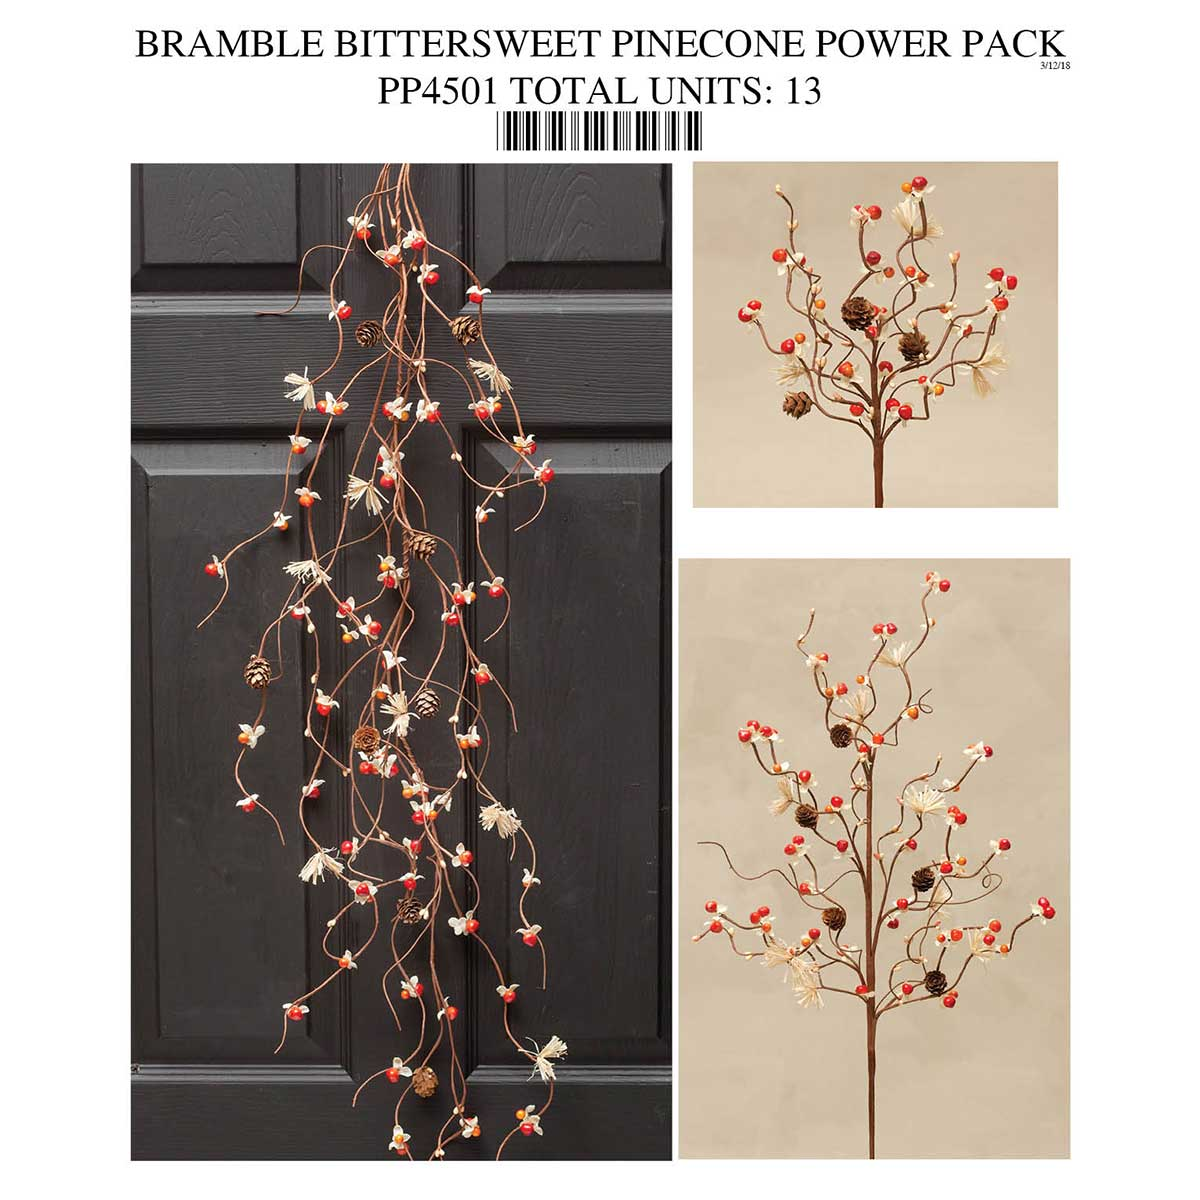 Bittersweet Pinecone Power Pack Collection 13 Units